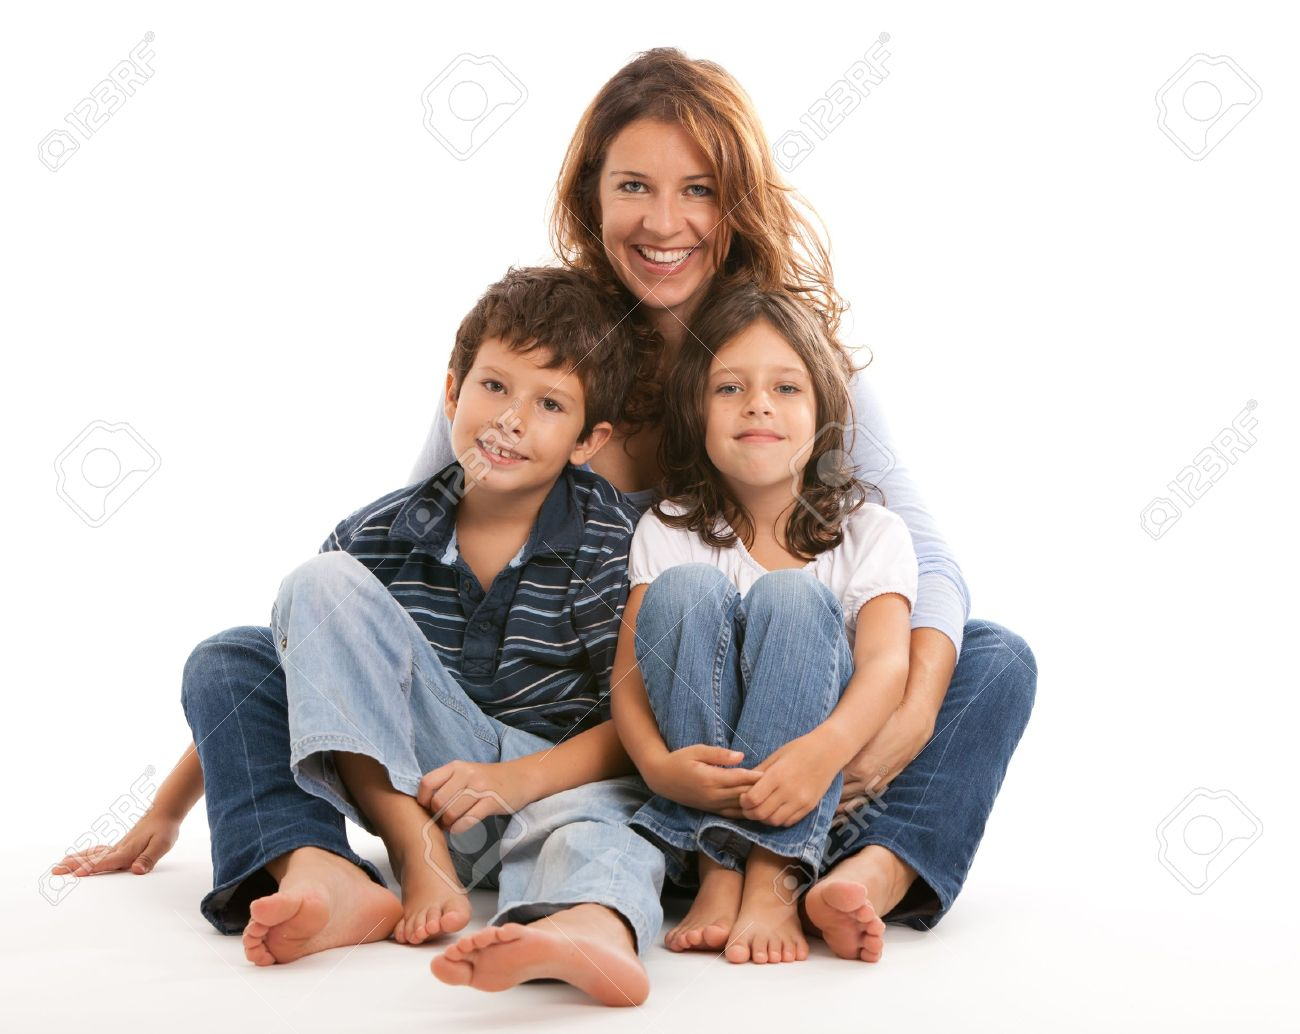 Mother, son and daughter on a white background - 10846306